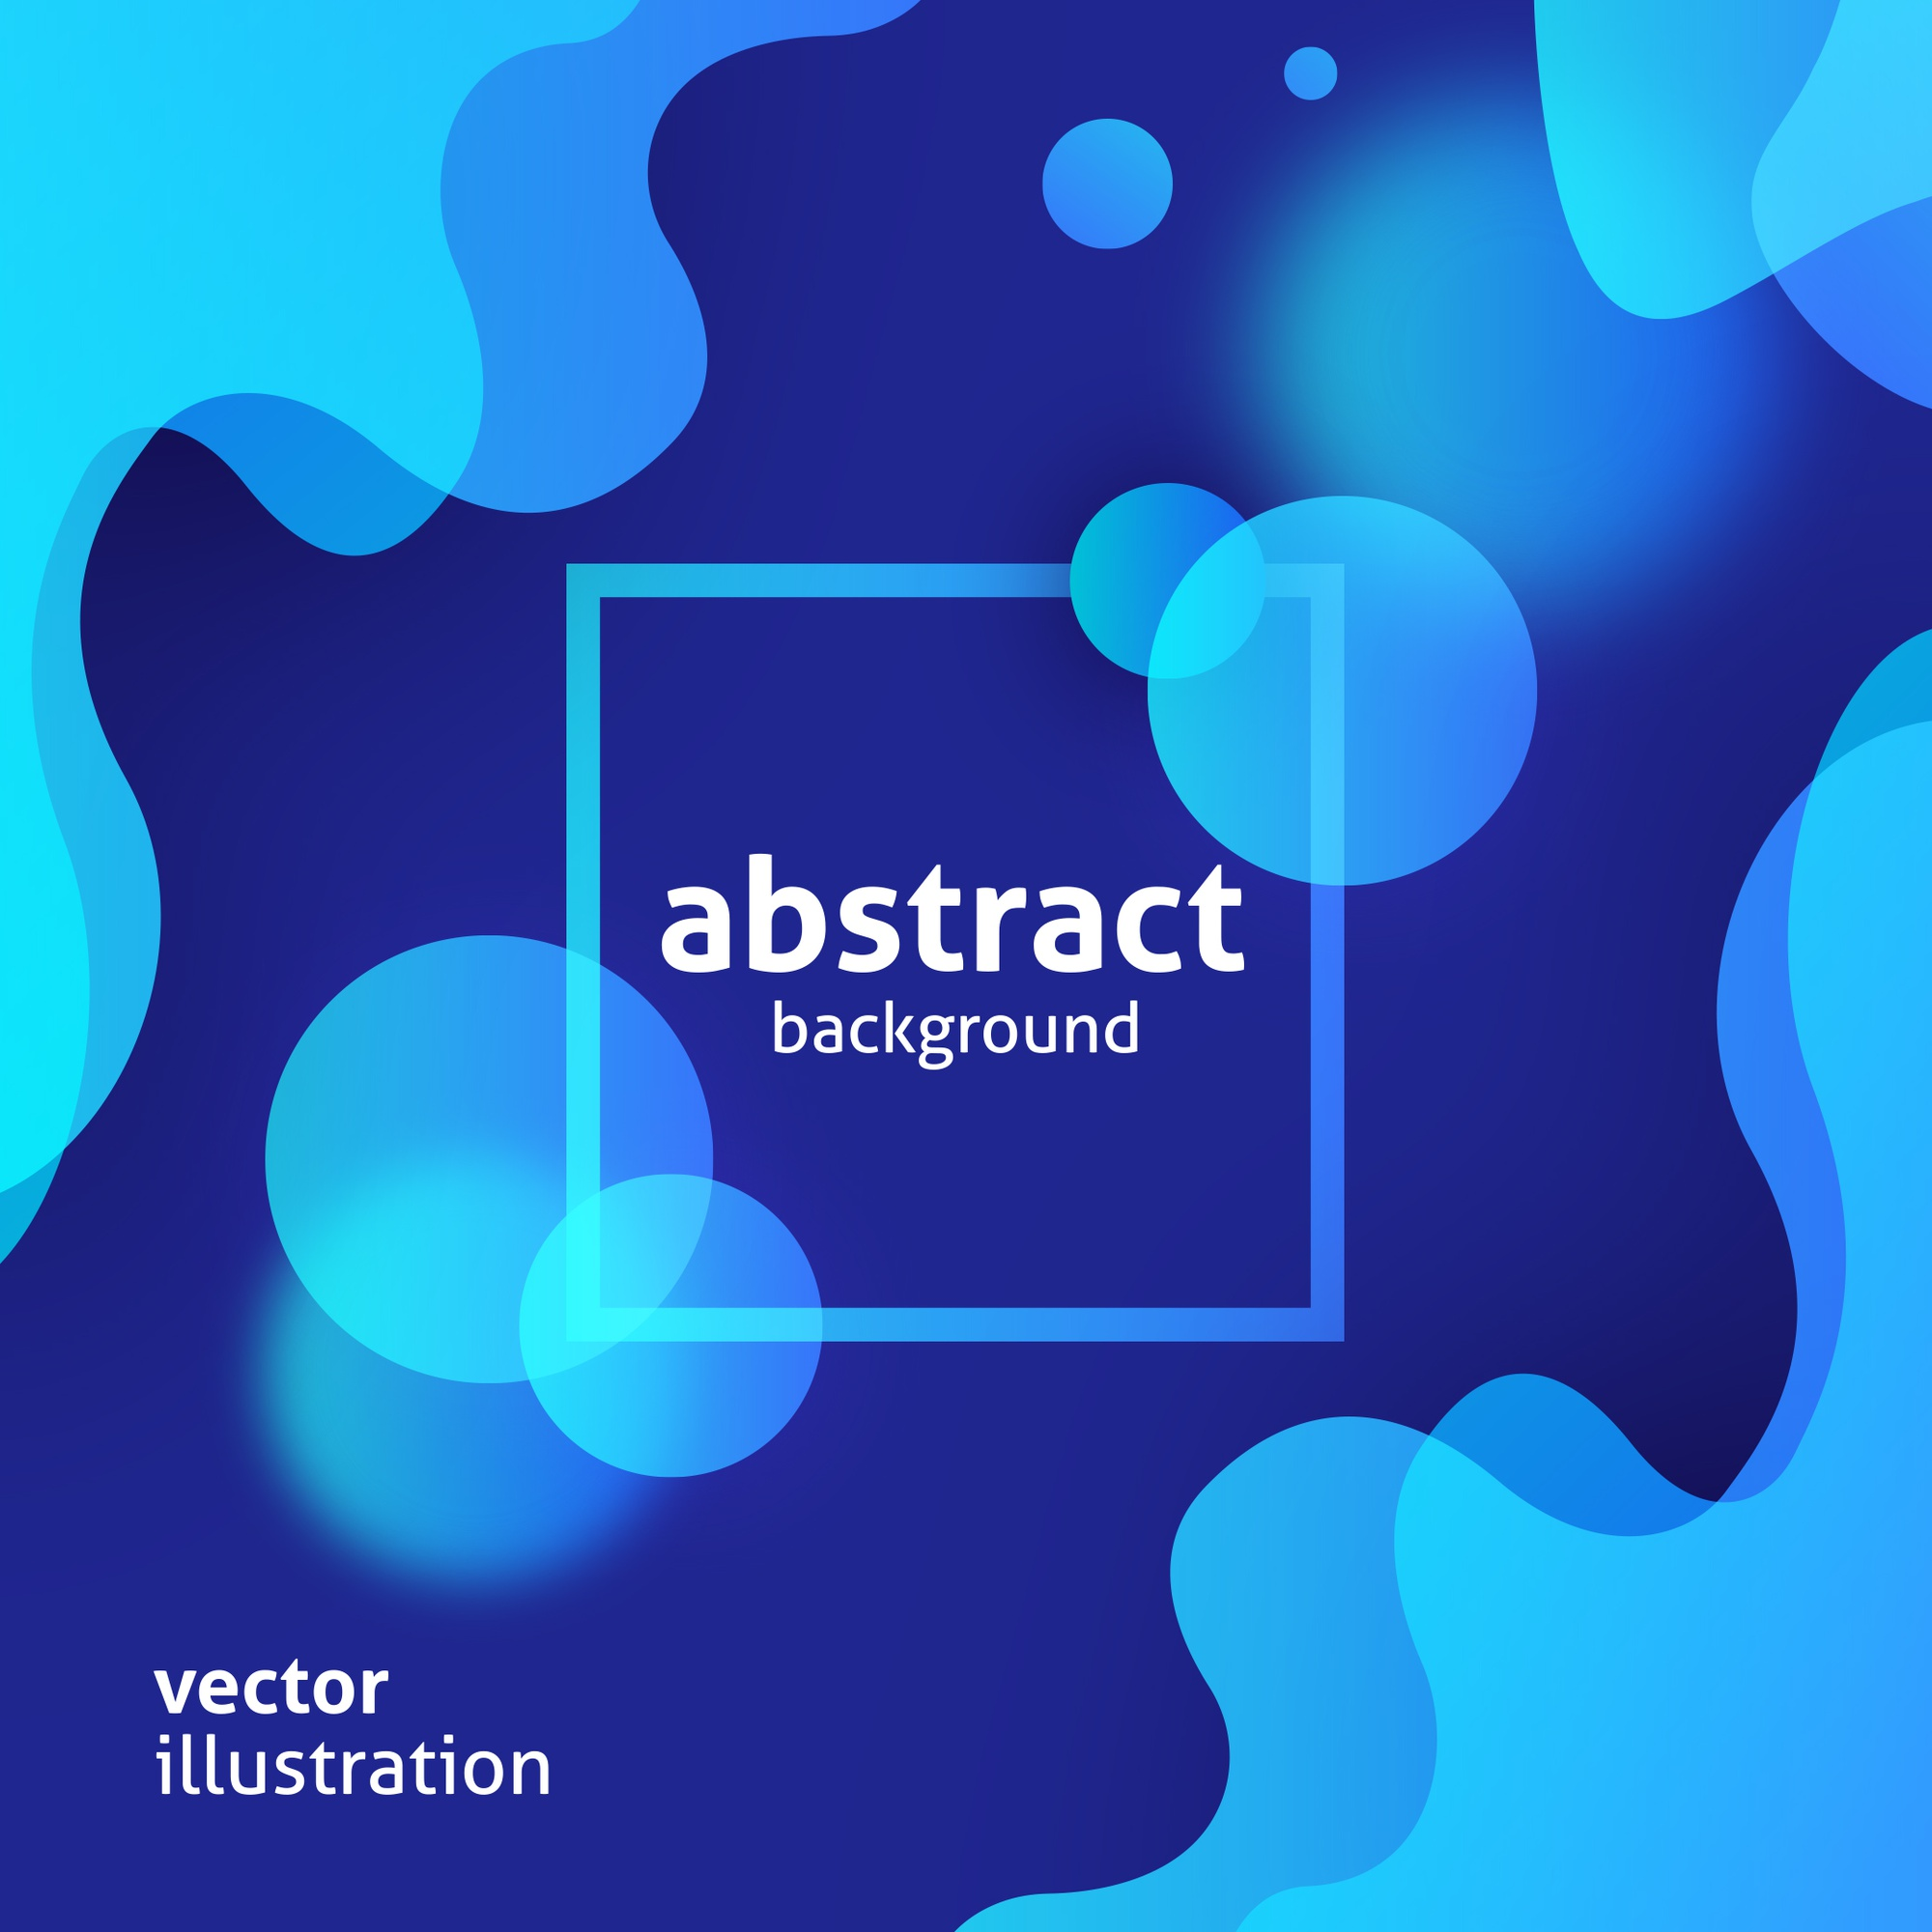 Modern abstract design with blue liquid shapes